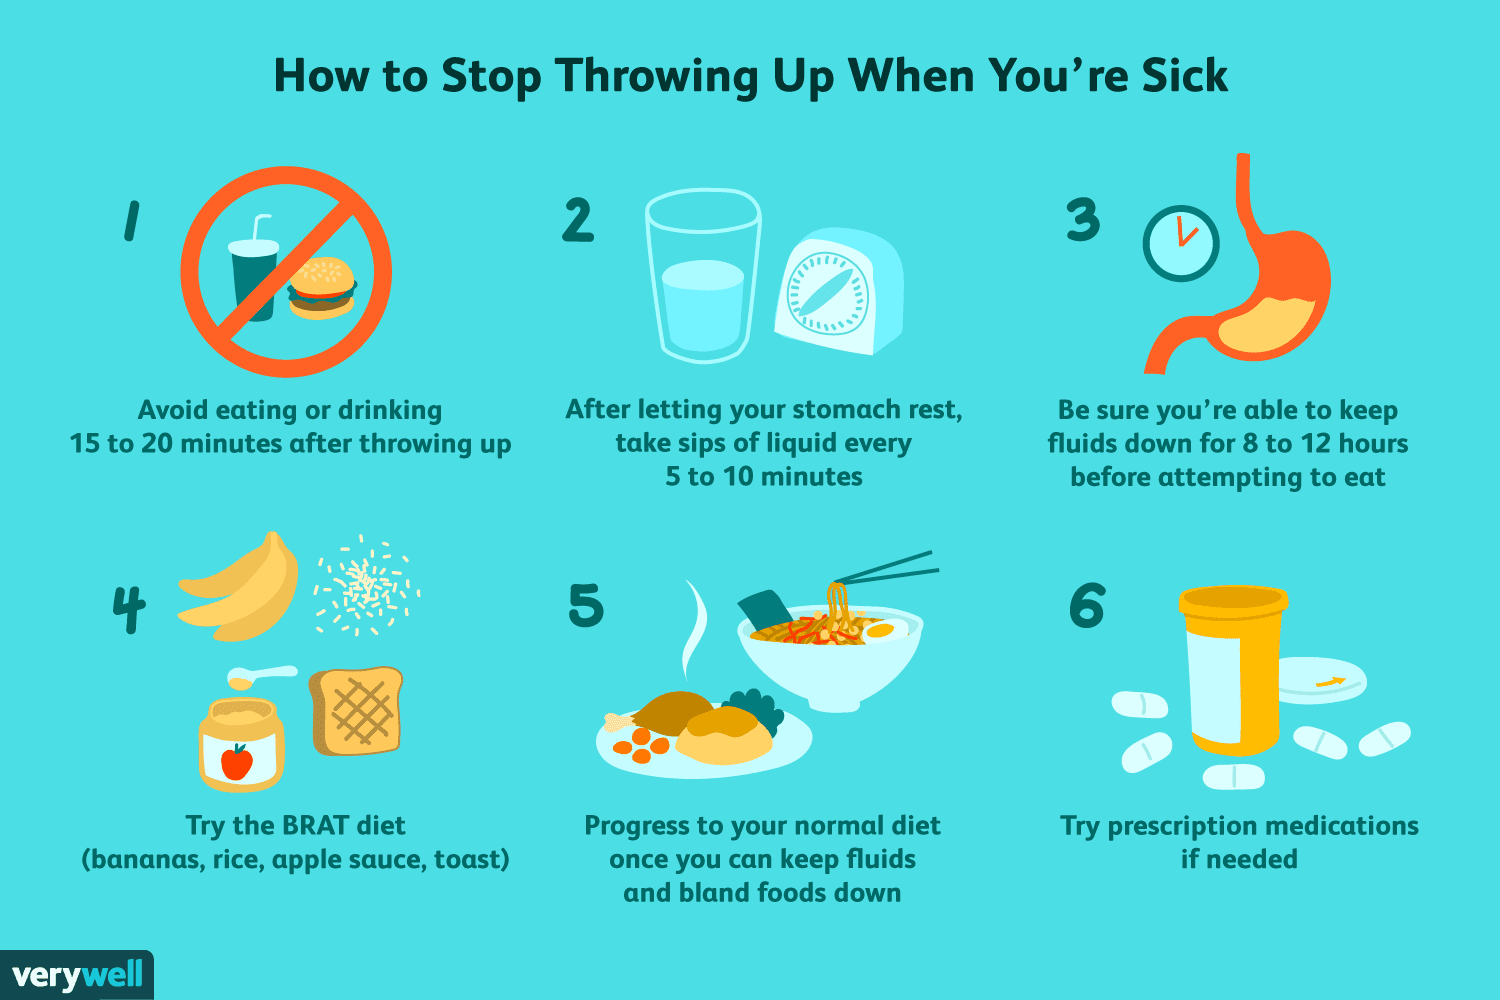 Treatment for How to Stop Throwing Up.